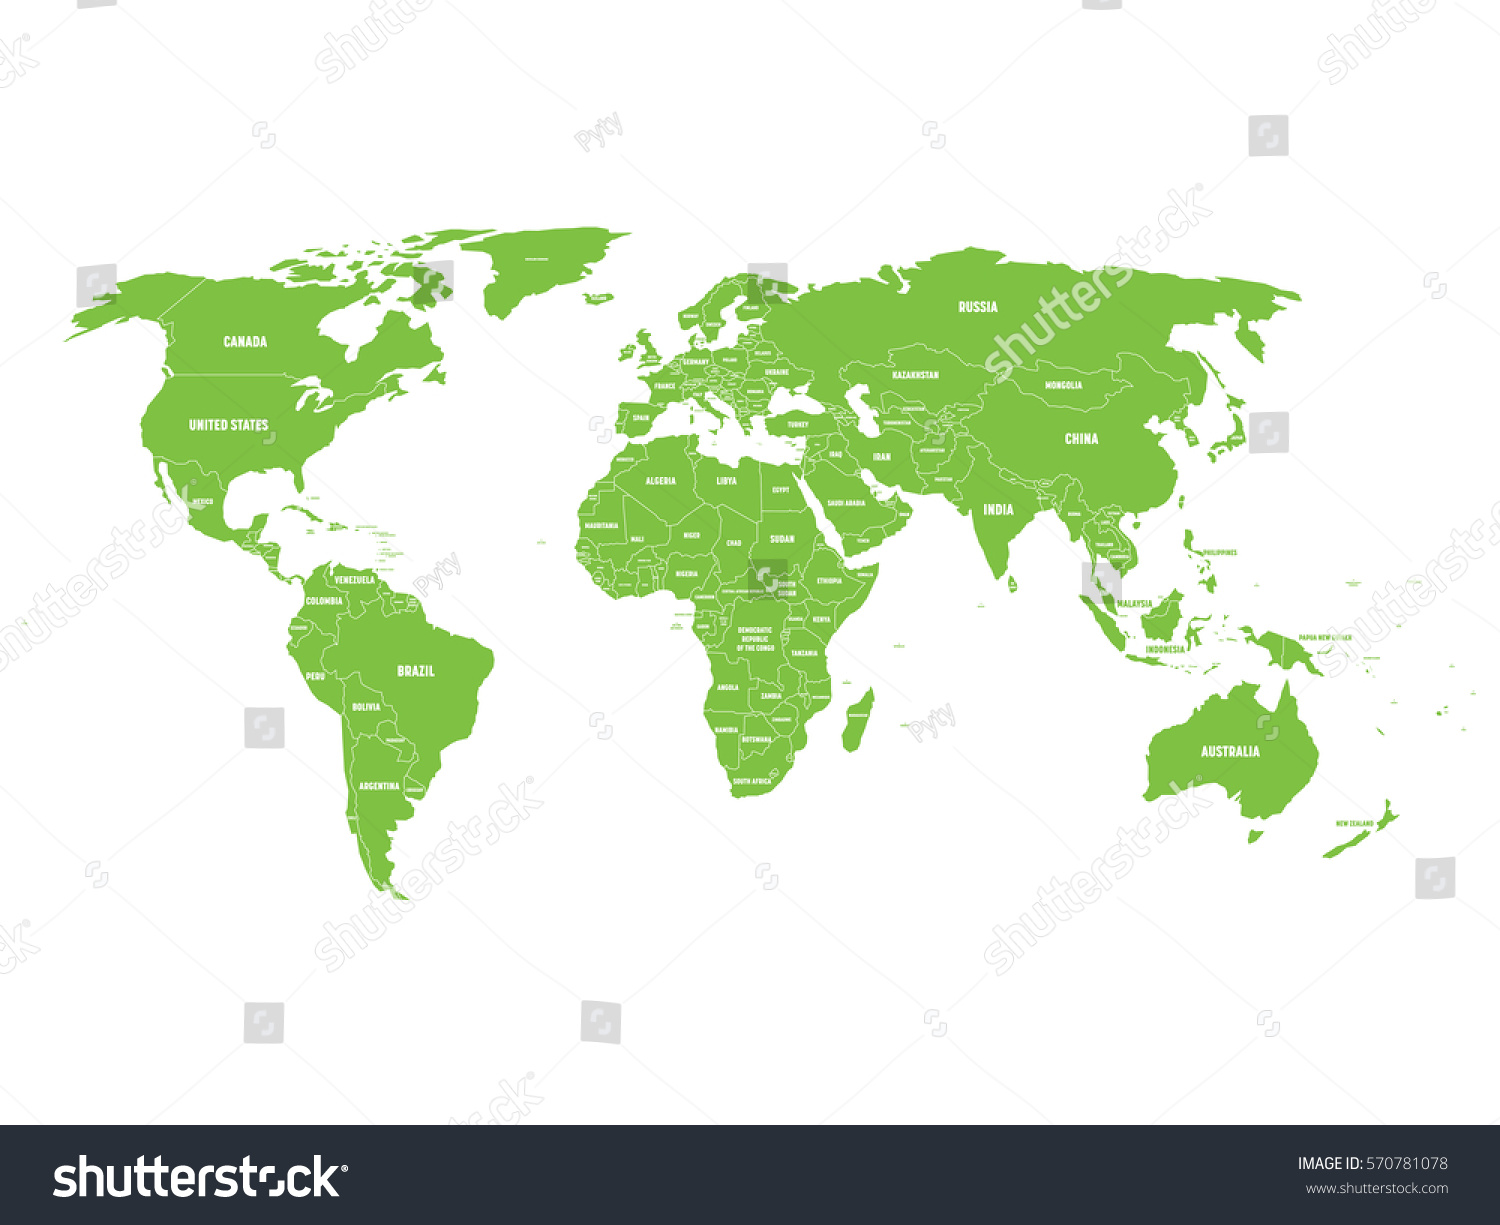 Green Political World Map Country Borders Stock Vector 570781078